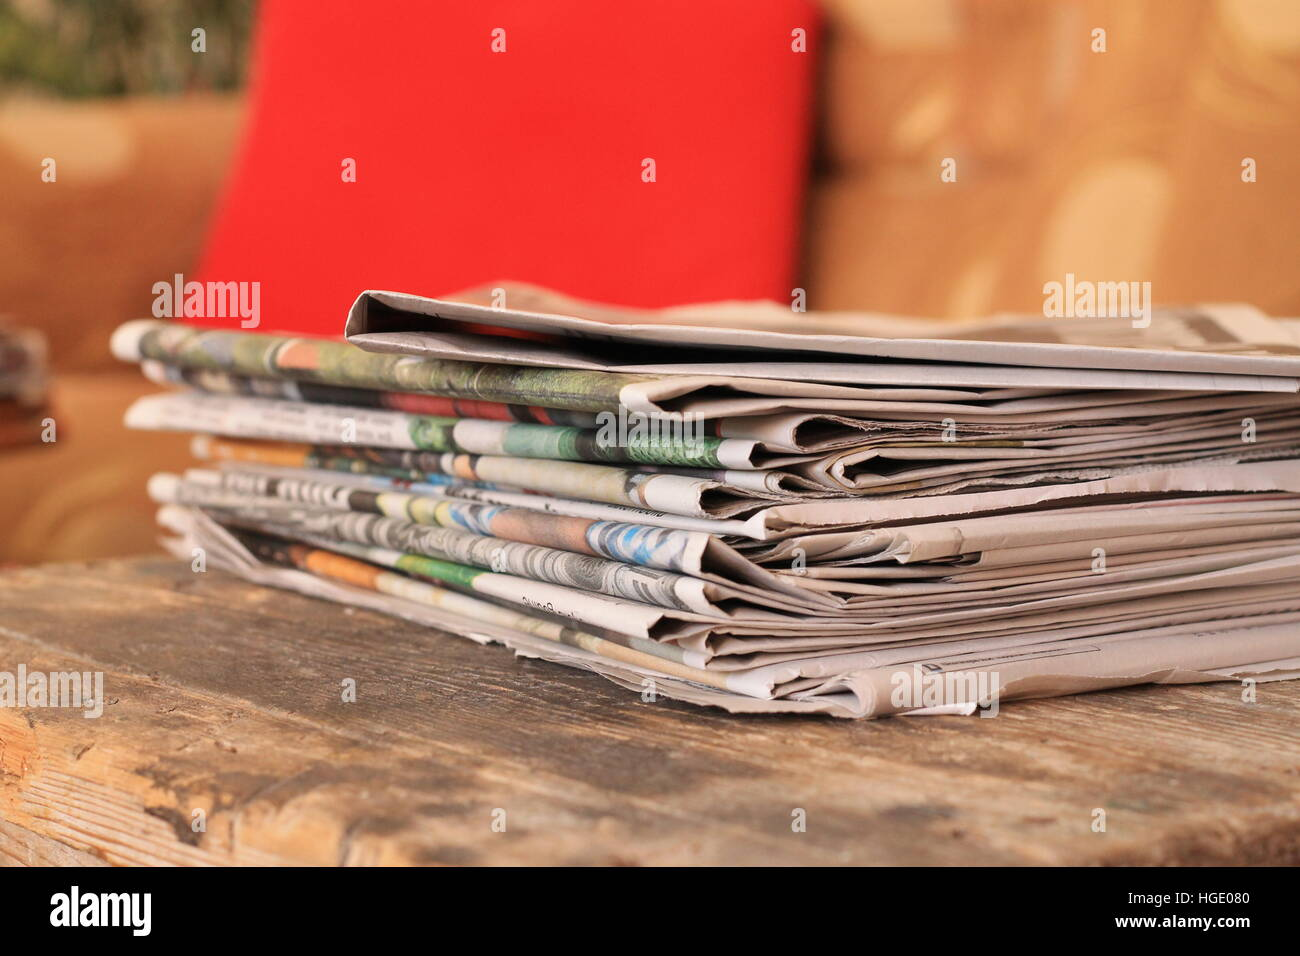 Newspapers on wooden table - Stock Image